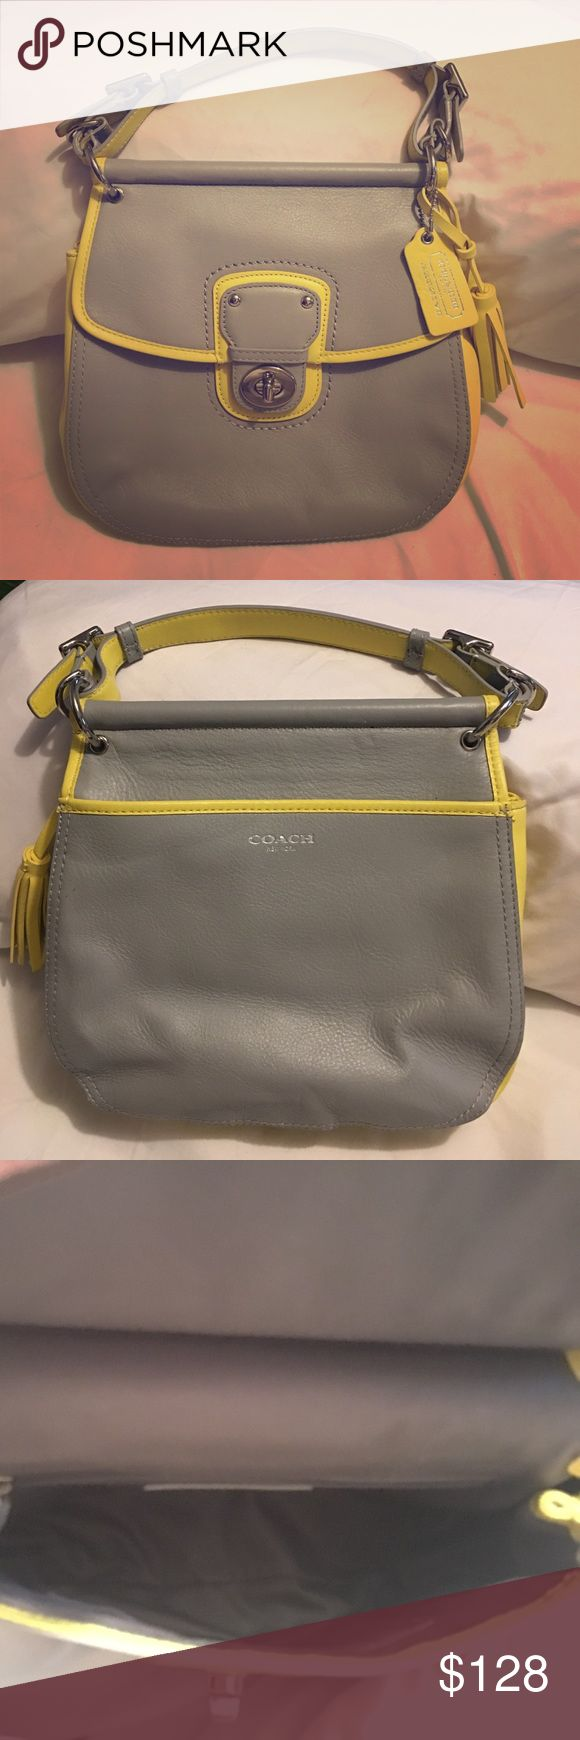 RARE COACH LEGACY ARCHIVAL HANDBAG COACH LEGACY ARCHIVAL. Two tone Willis Crossbody Handbag. MINT CONDITION!! Used ONE TIME. No interior or exterior damage. No longer sold in most stores and hard to find. Contrast bindings and tassels add definition to the design, giving it a heritage Coach look that is at once modern and classic. - MSRP $328.00. Coach Bags